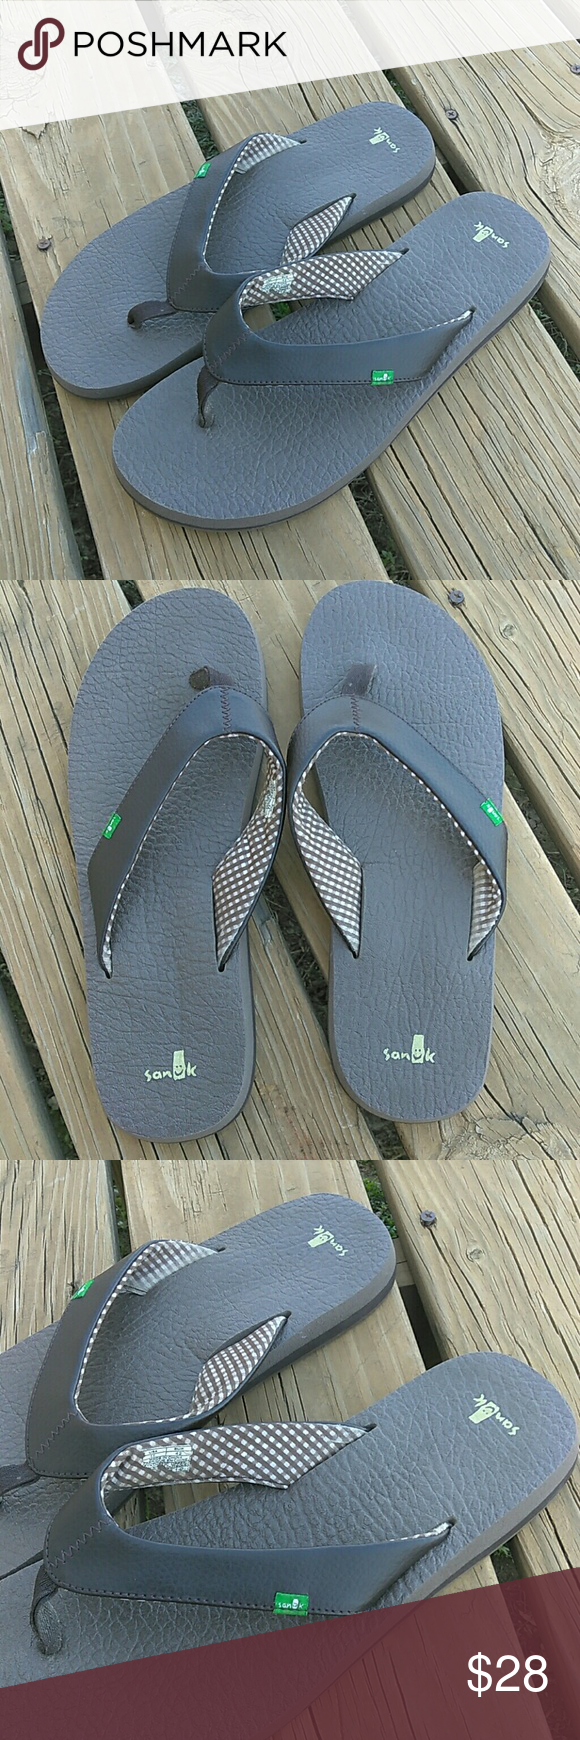 Sanuk Flip Flops Excellent Condition very comfy cushion soles Size 11 Have any questions feel free to ask   Ships Same/next day Mon-Fri  No trades  Bundle 2 items & Save 10%  Offers accepted they offer button only Sanuk Shoes Sandals